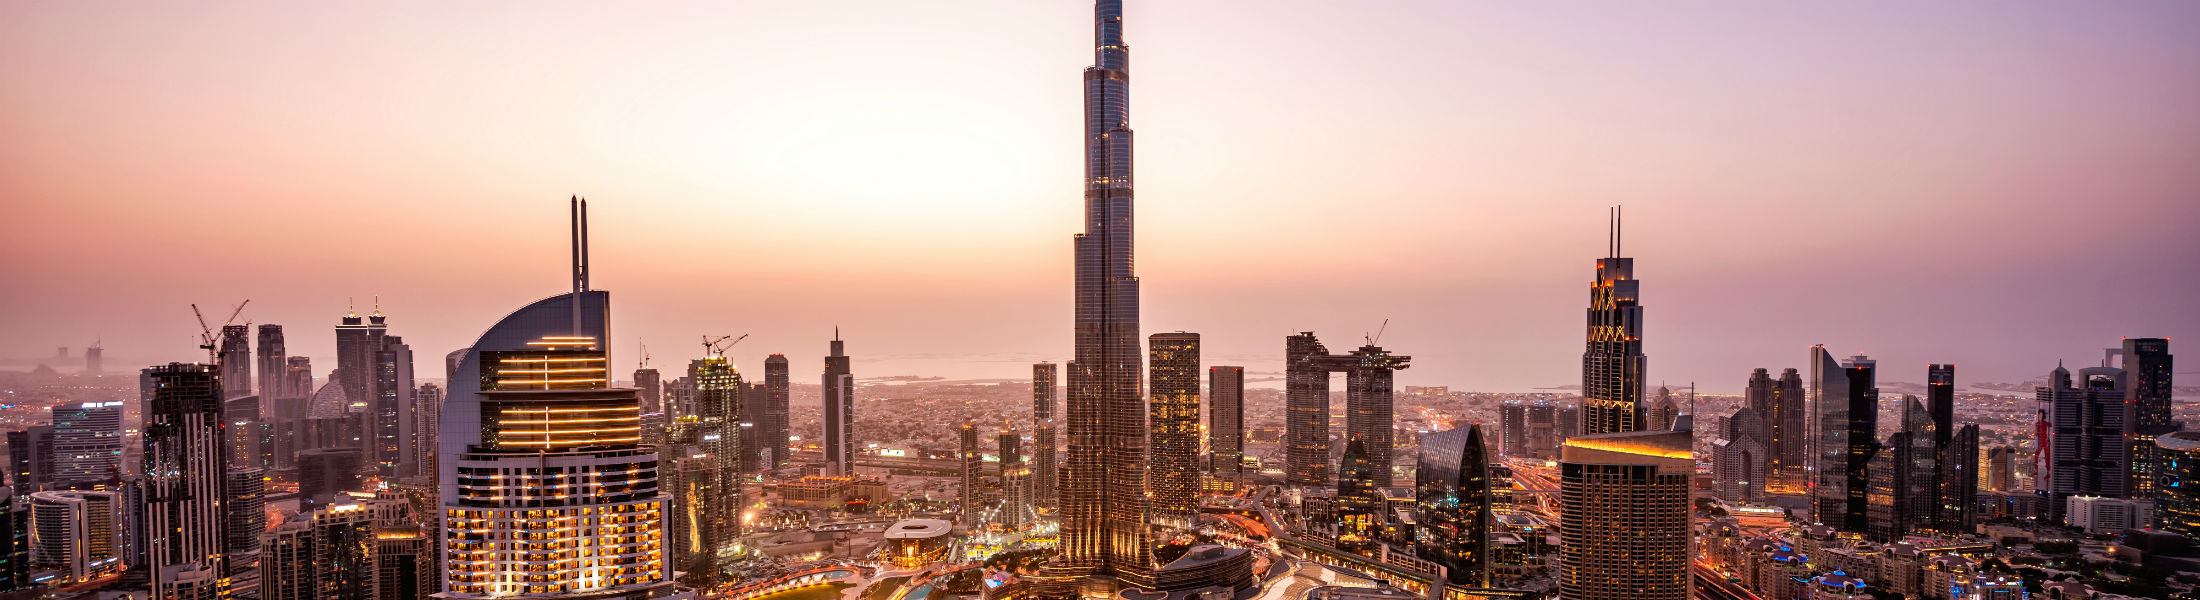 Dubai - Burj Khalifa and city at dusk